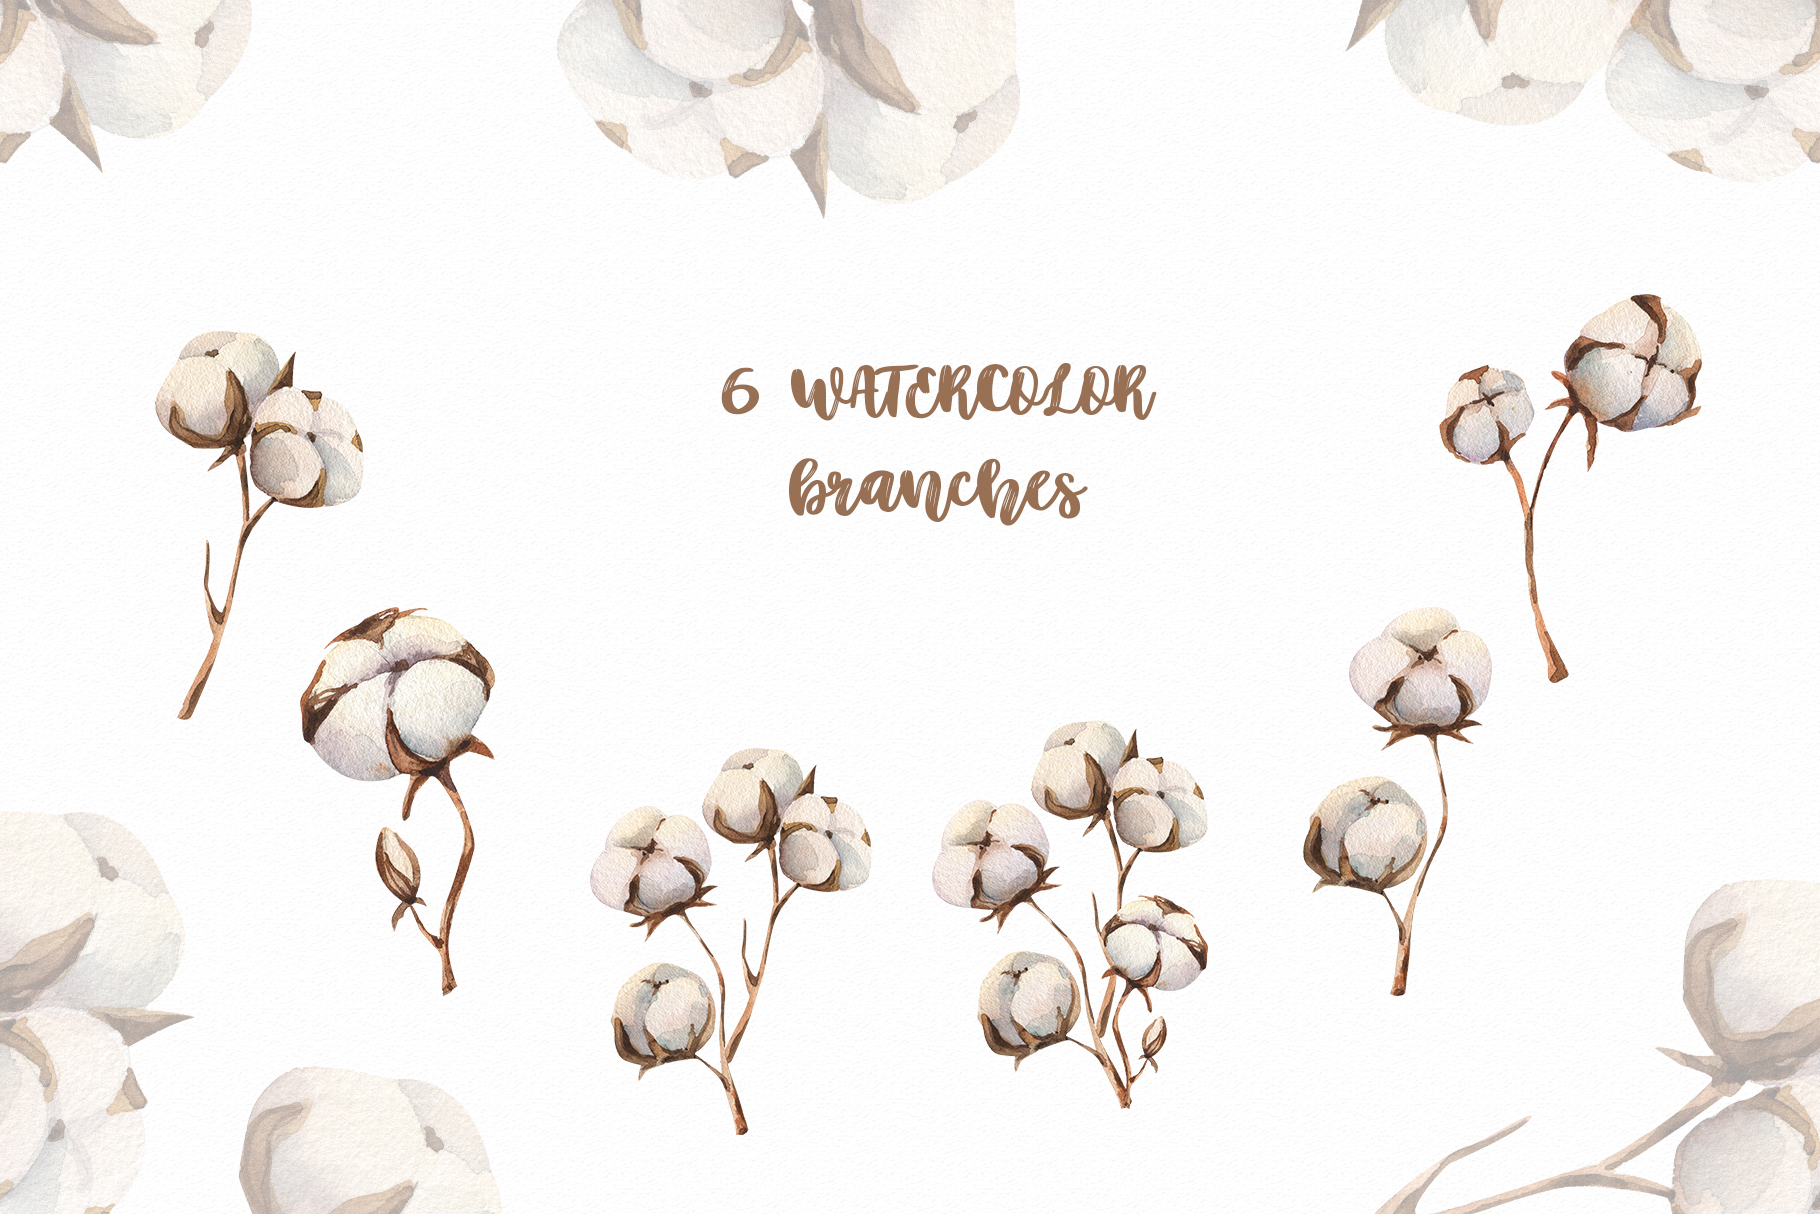 Watercolour Cotton clipart, branches winter watercolor example image 2